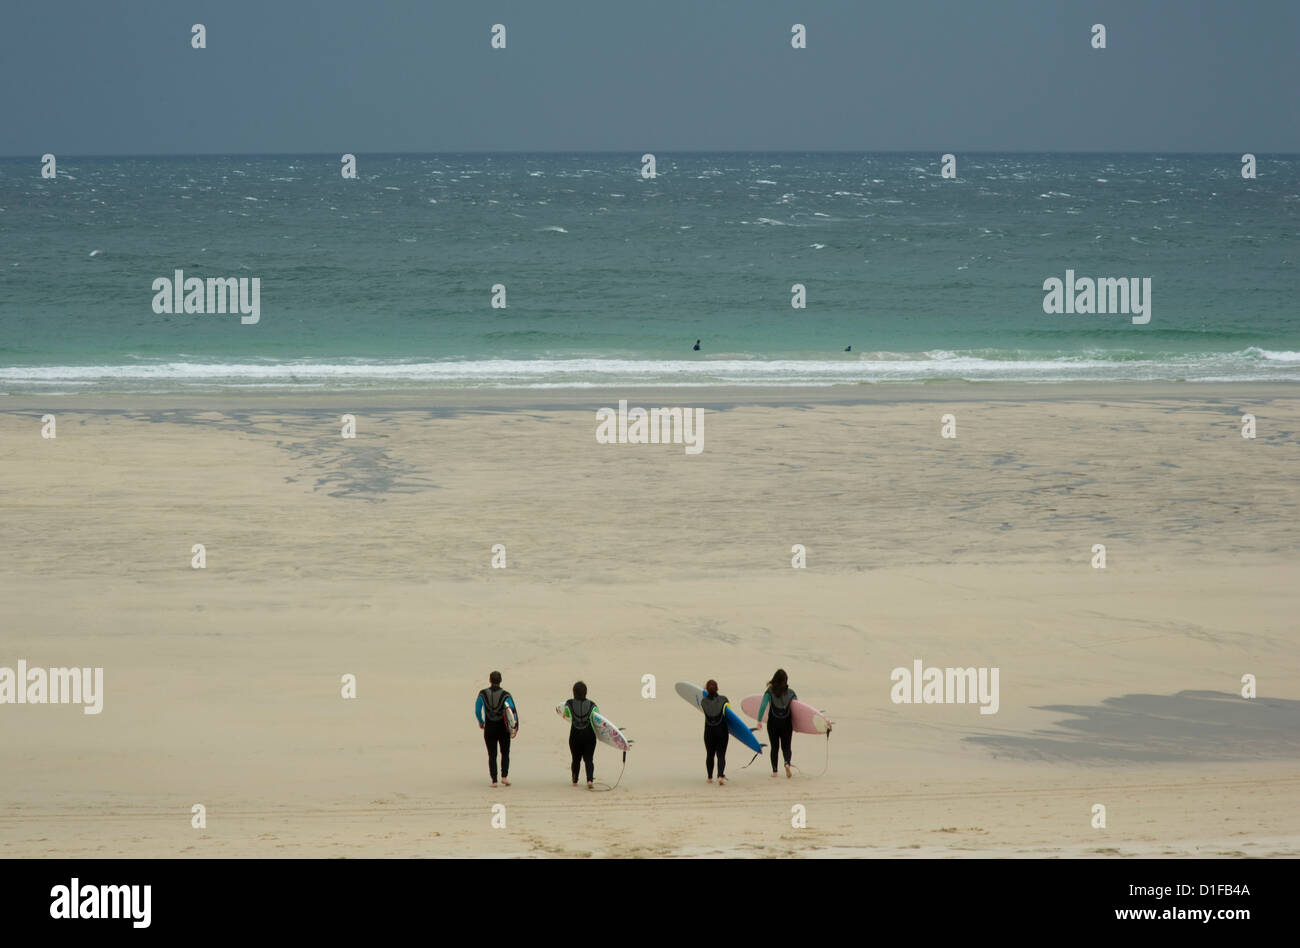 Four surfers in wet suits carrying boards and heading down the beach in St. Ives, Cornwall, England - Stock Image